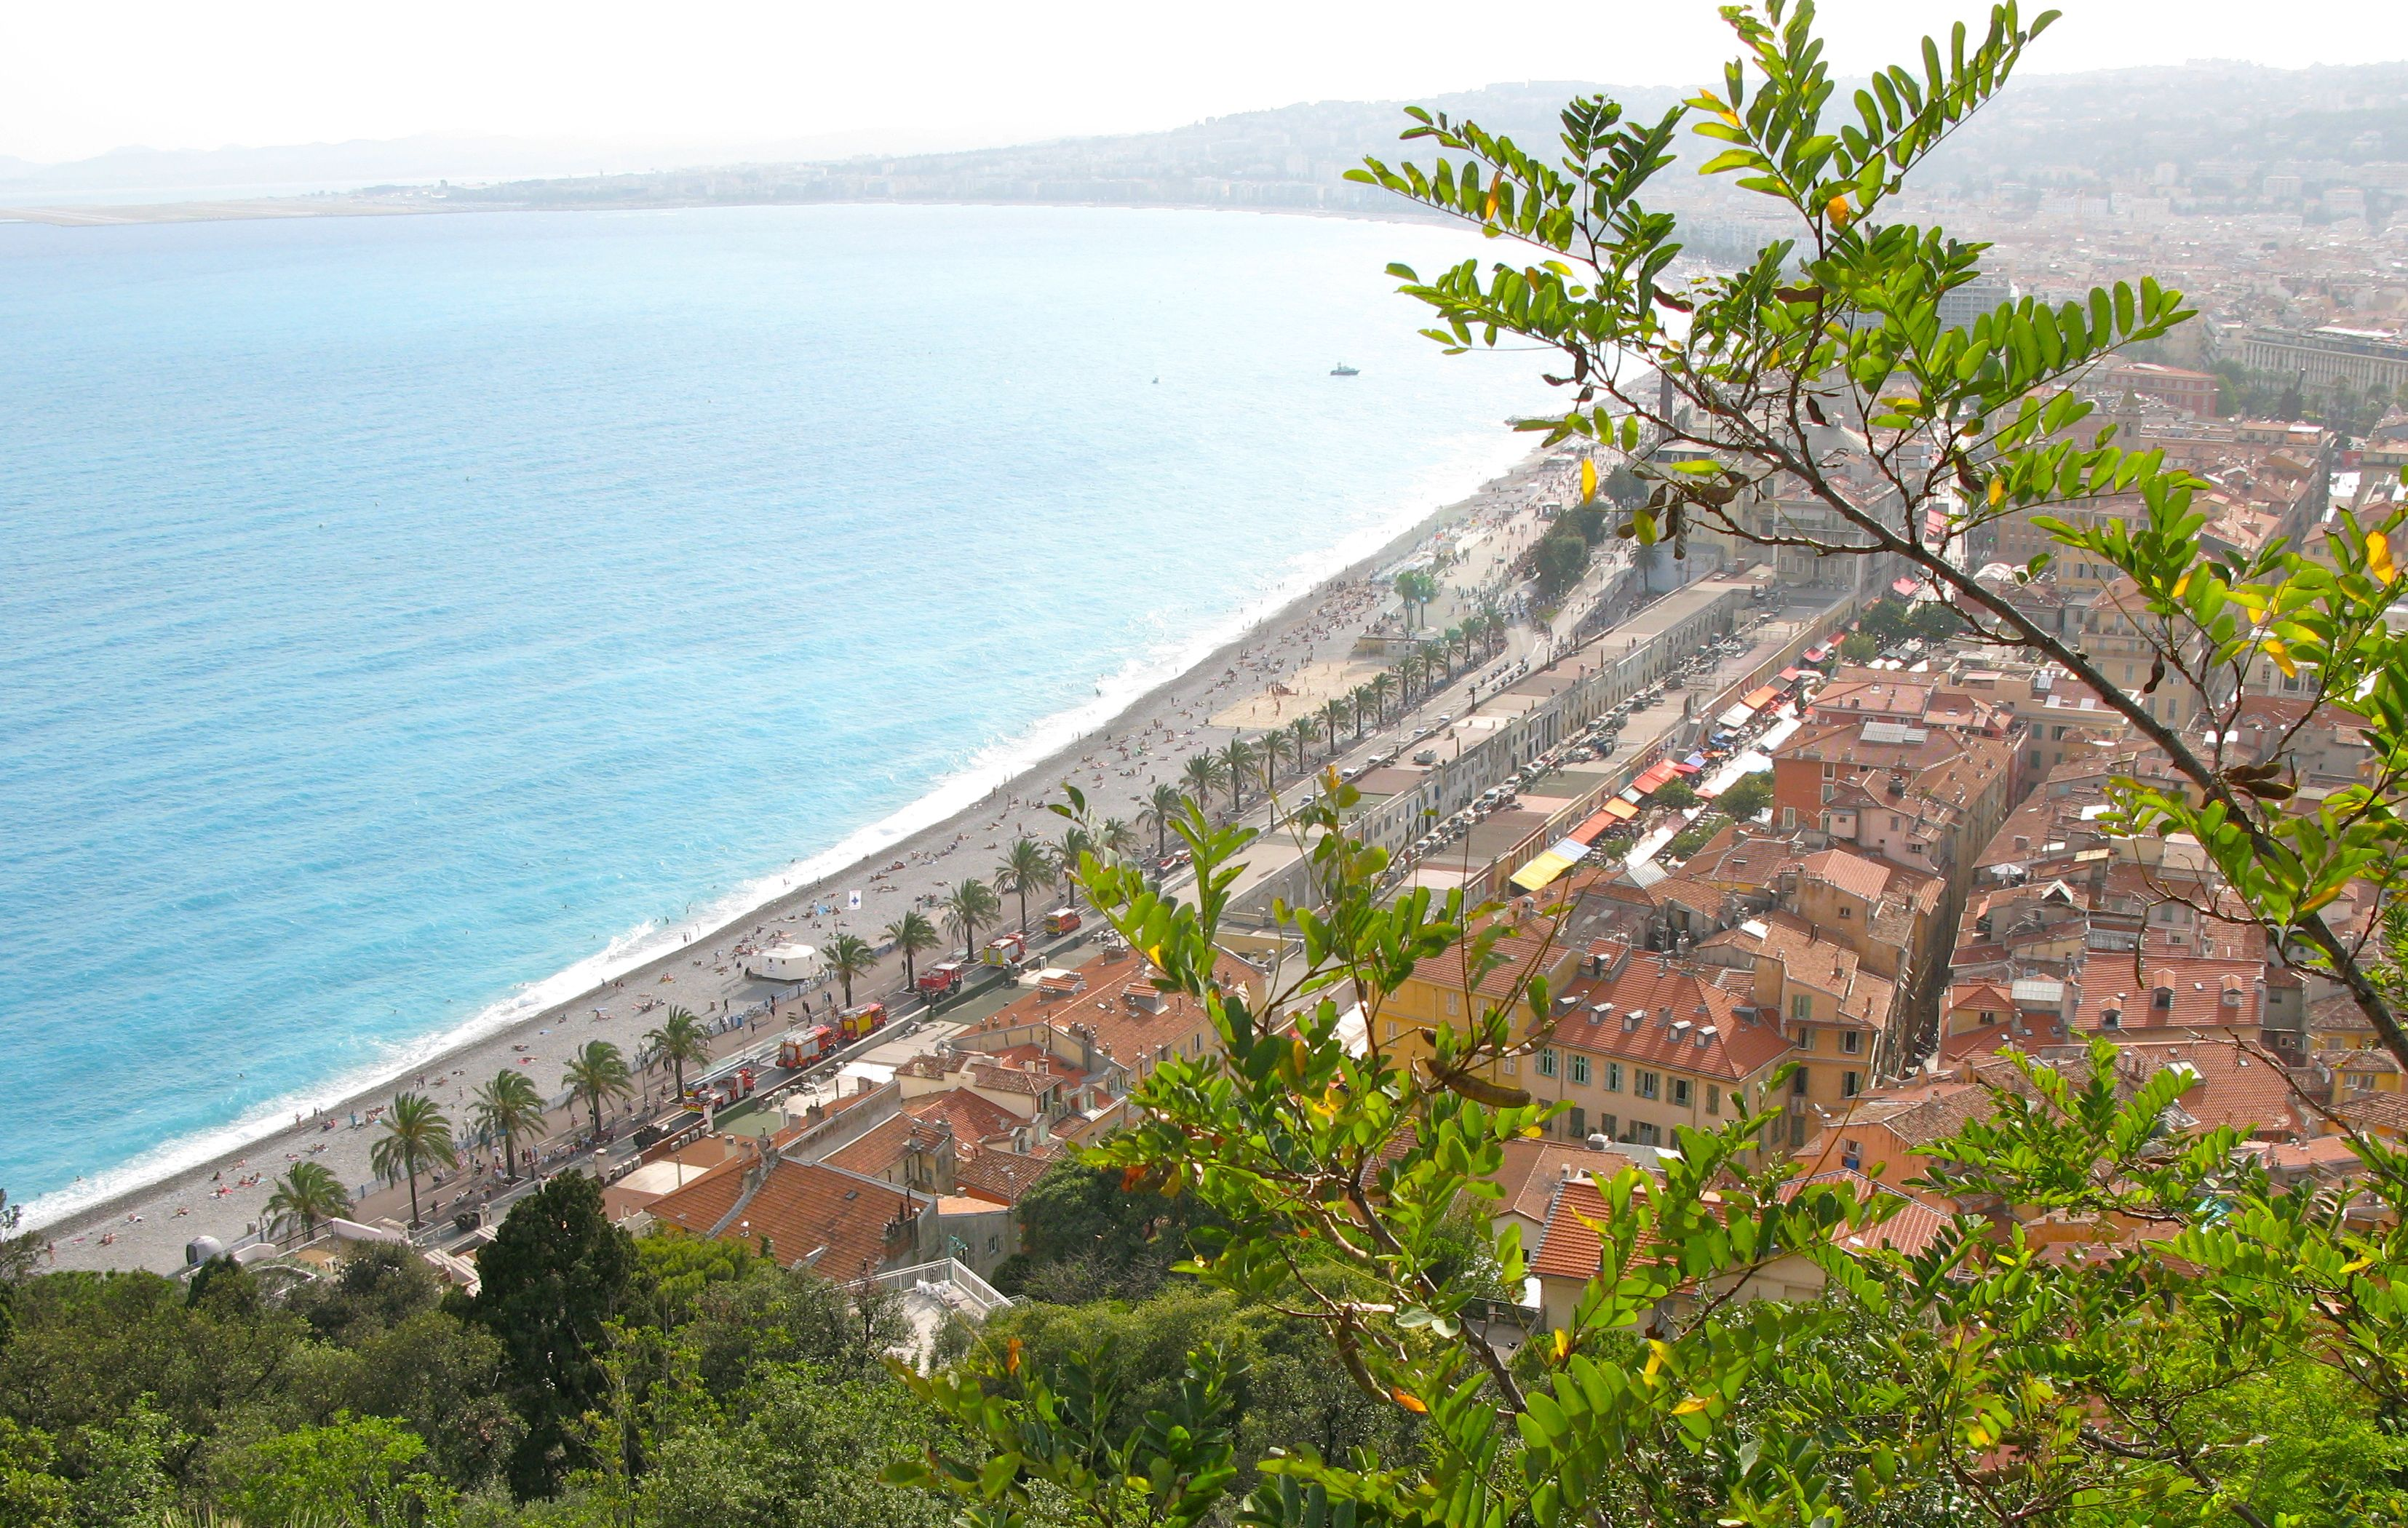 The French Riviera in Nice is a great summer spot with many wonderful flavors to explore.